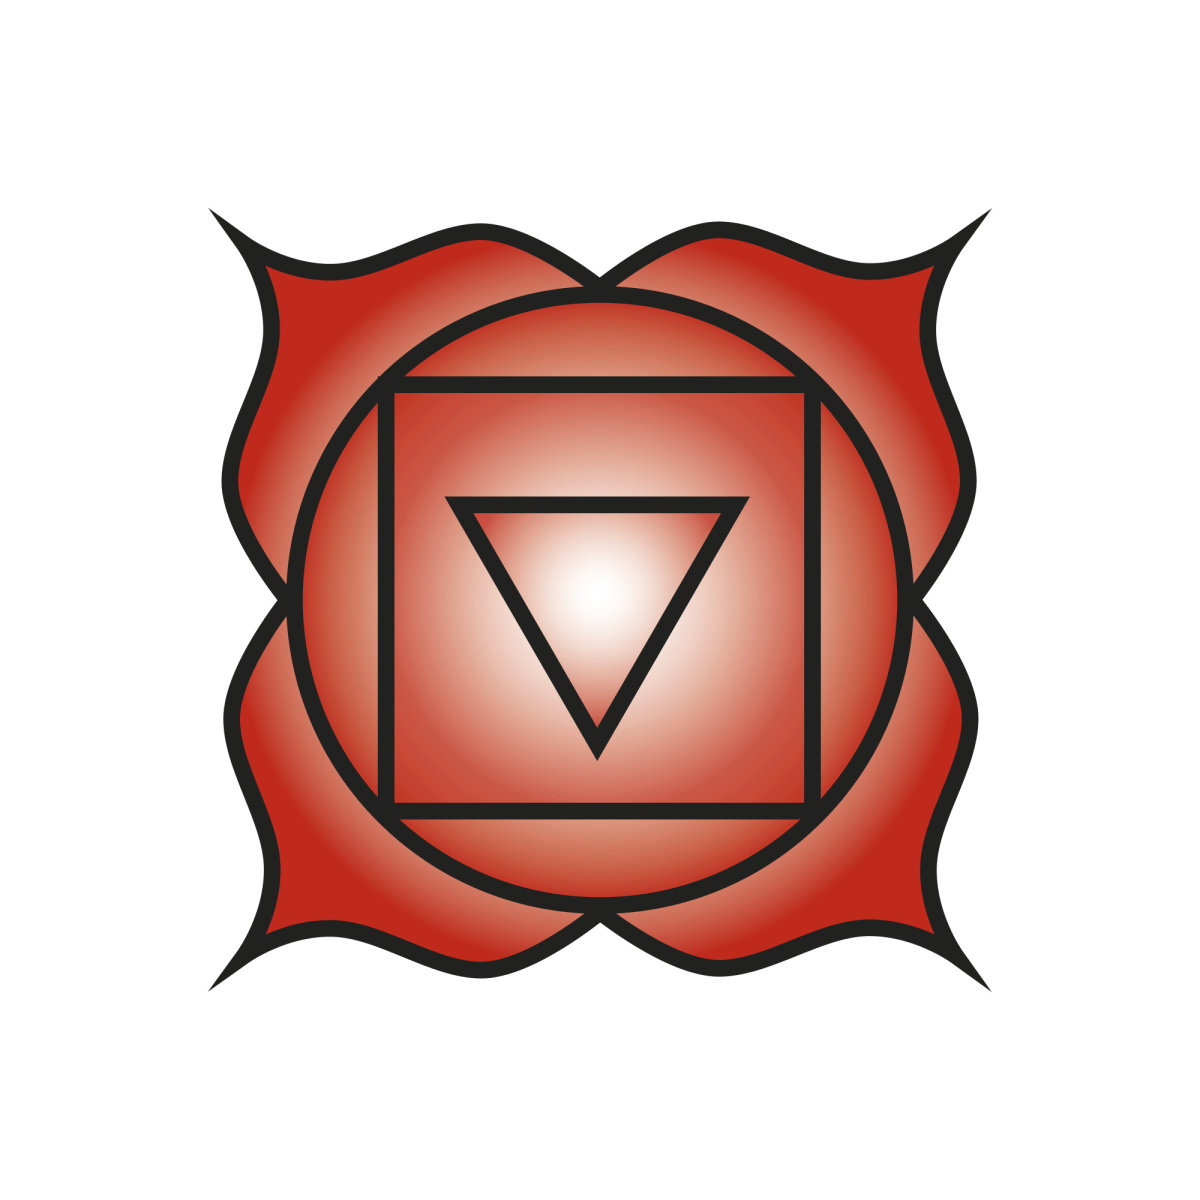 The root chakra is related to the color red.